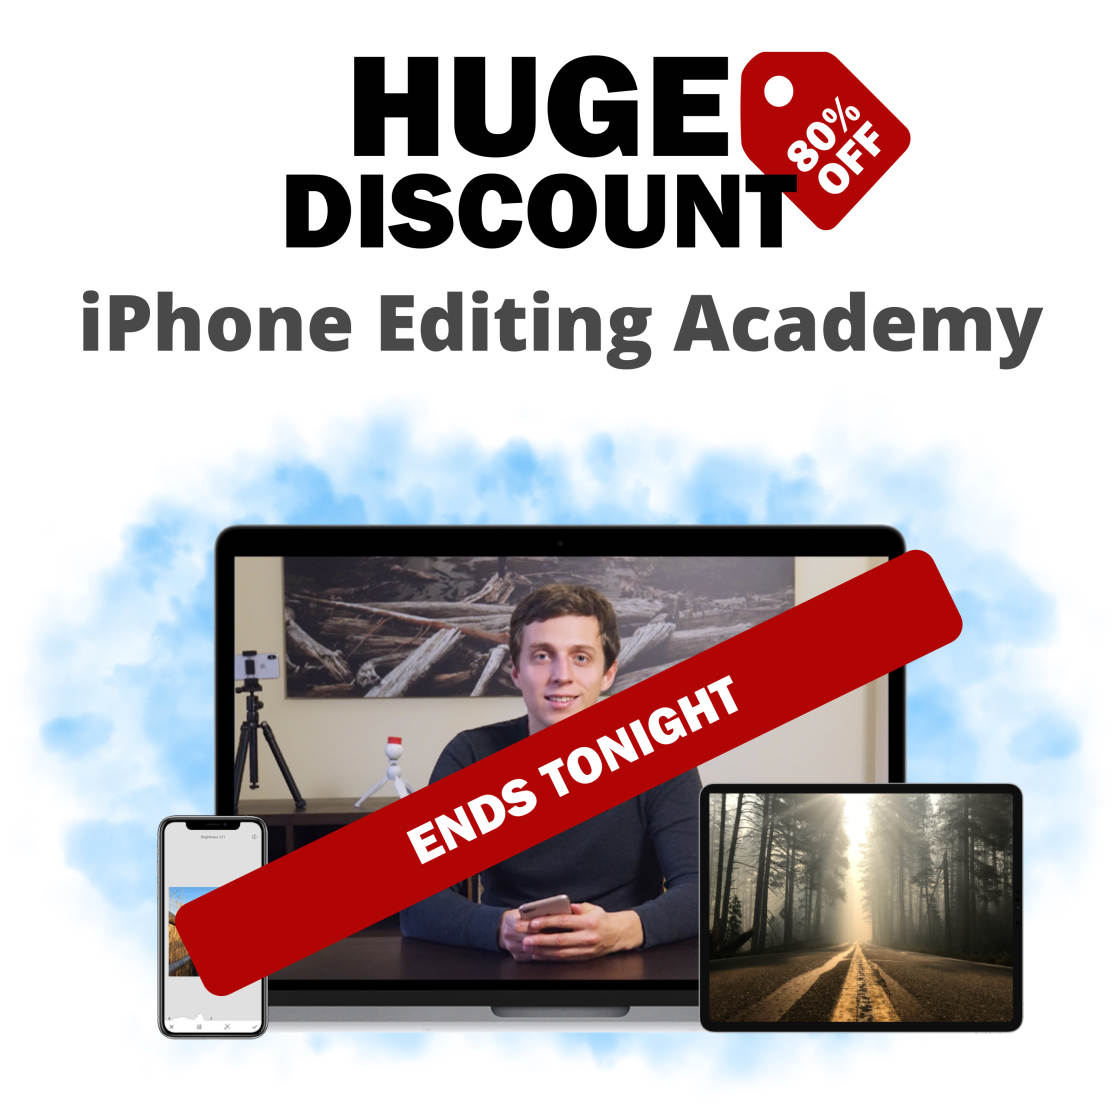 Huge 80% Discount For iPhone Editing Academy ENDS TONIGHT!